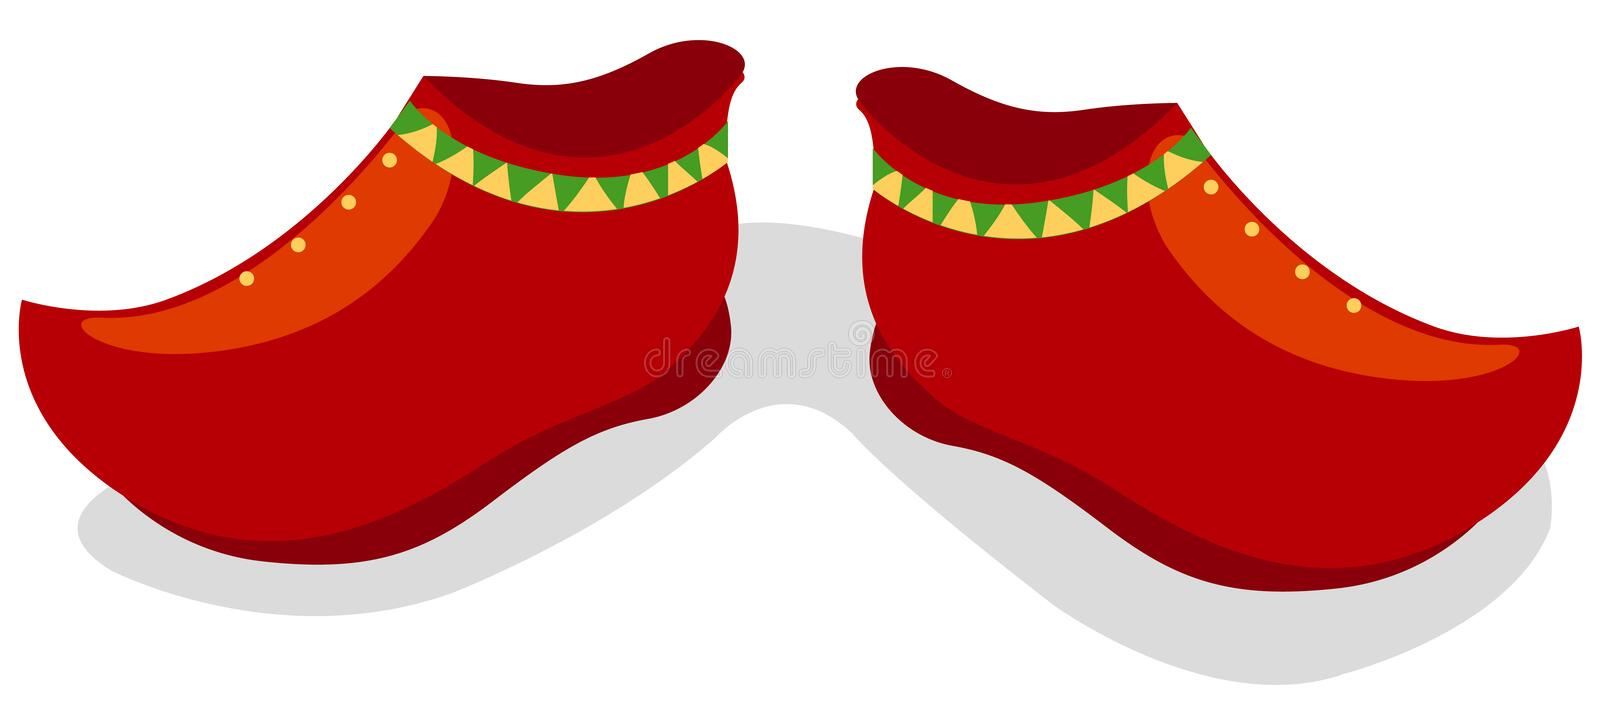 Download Red shoes stock vector. Image of cartoon, icon, accessory - 20441473